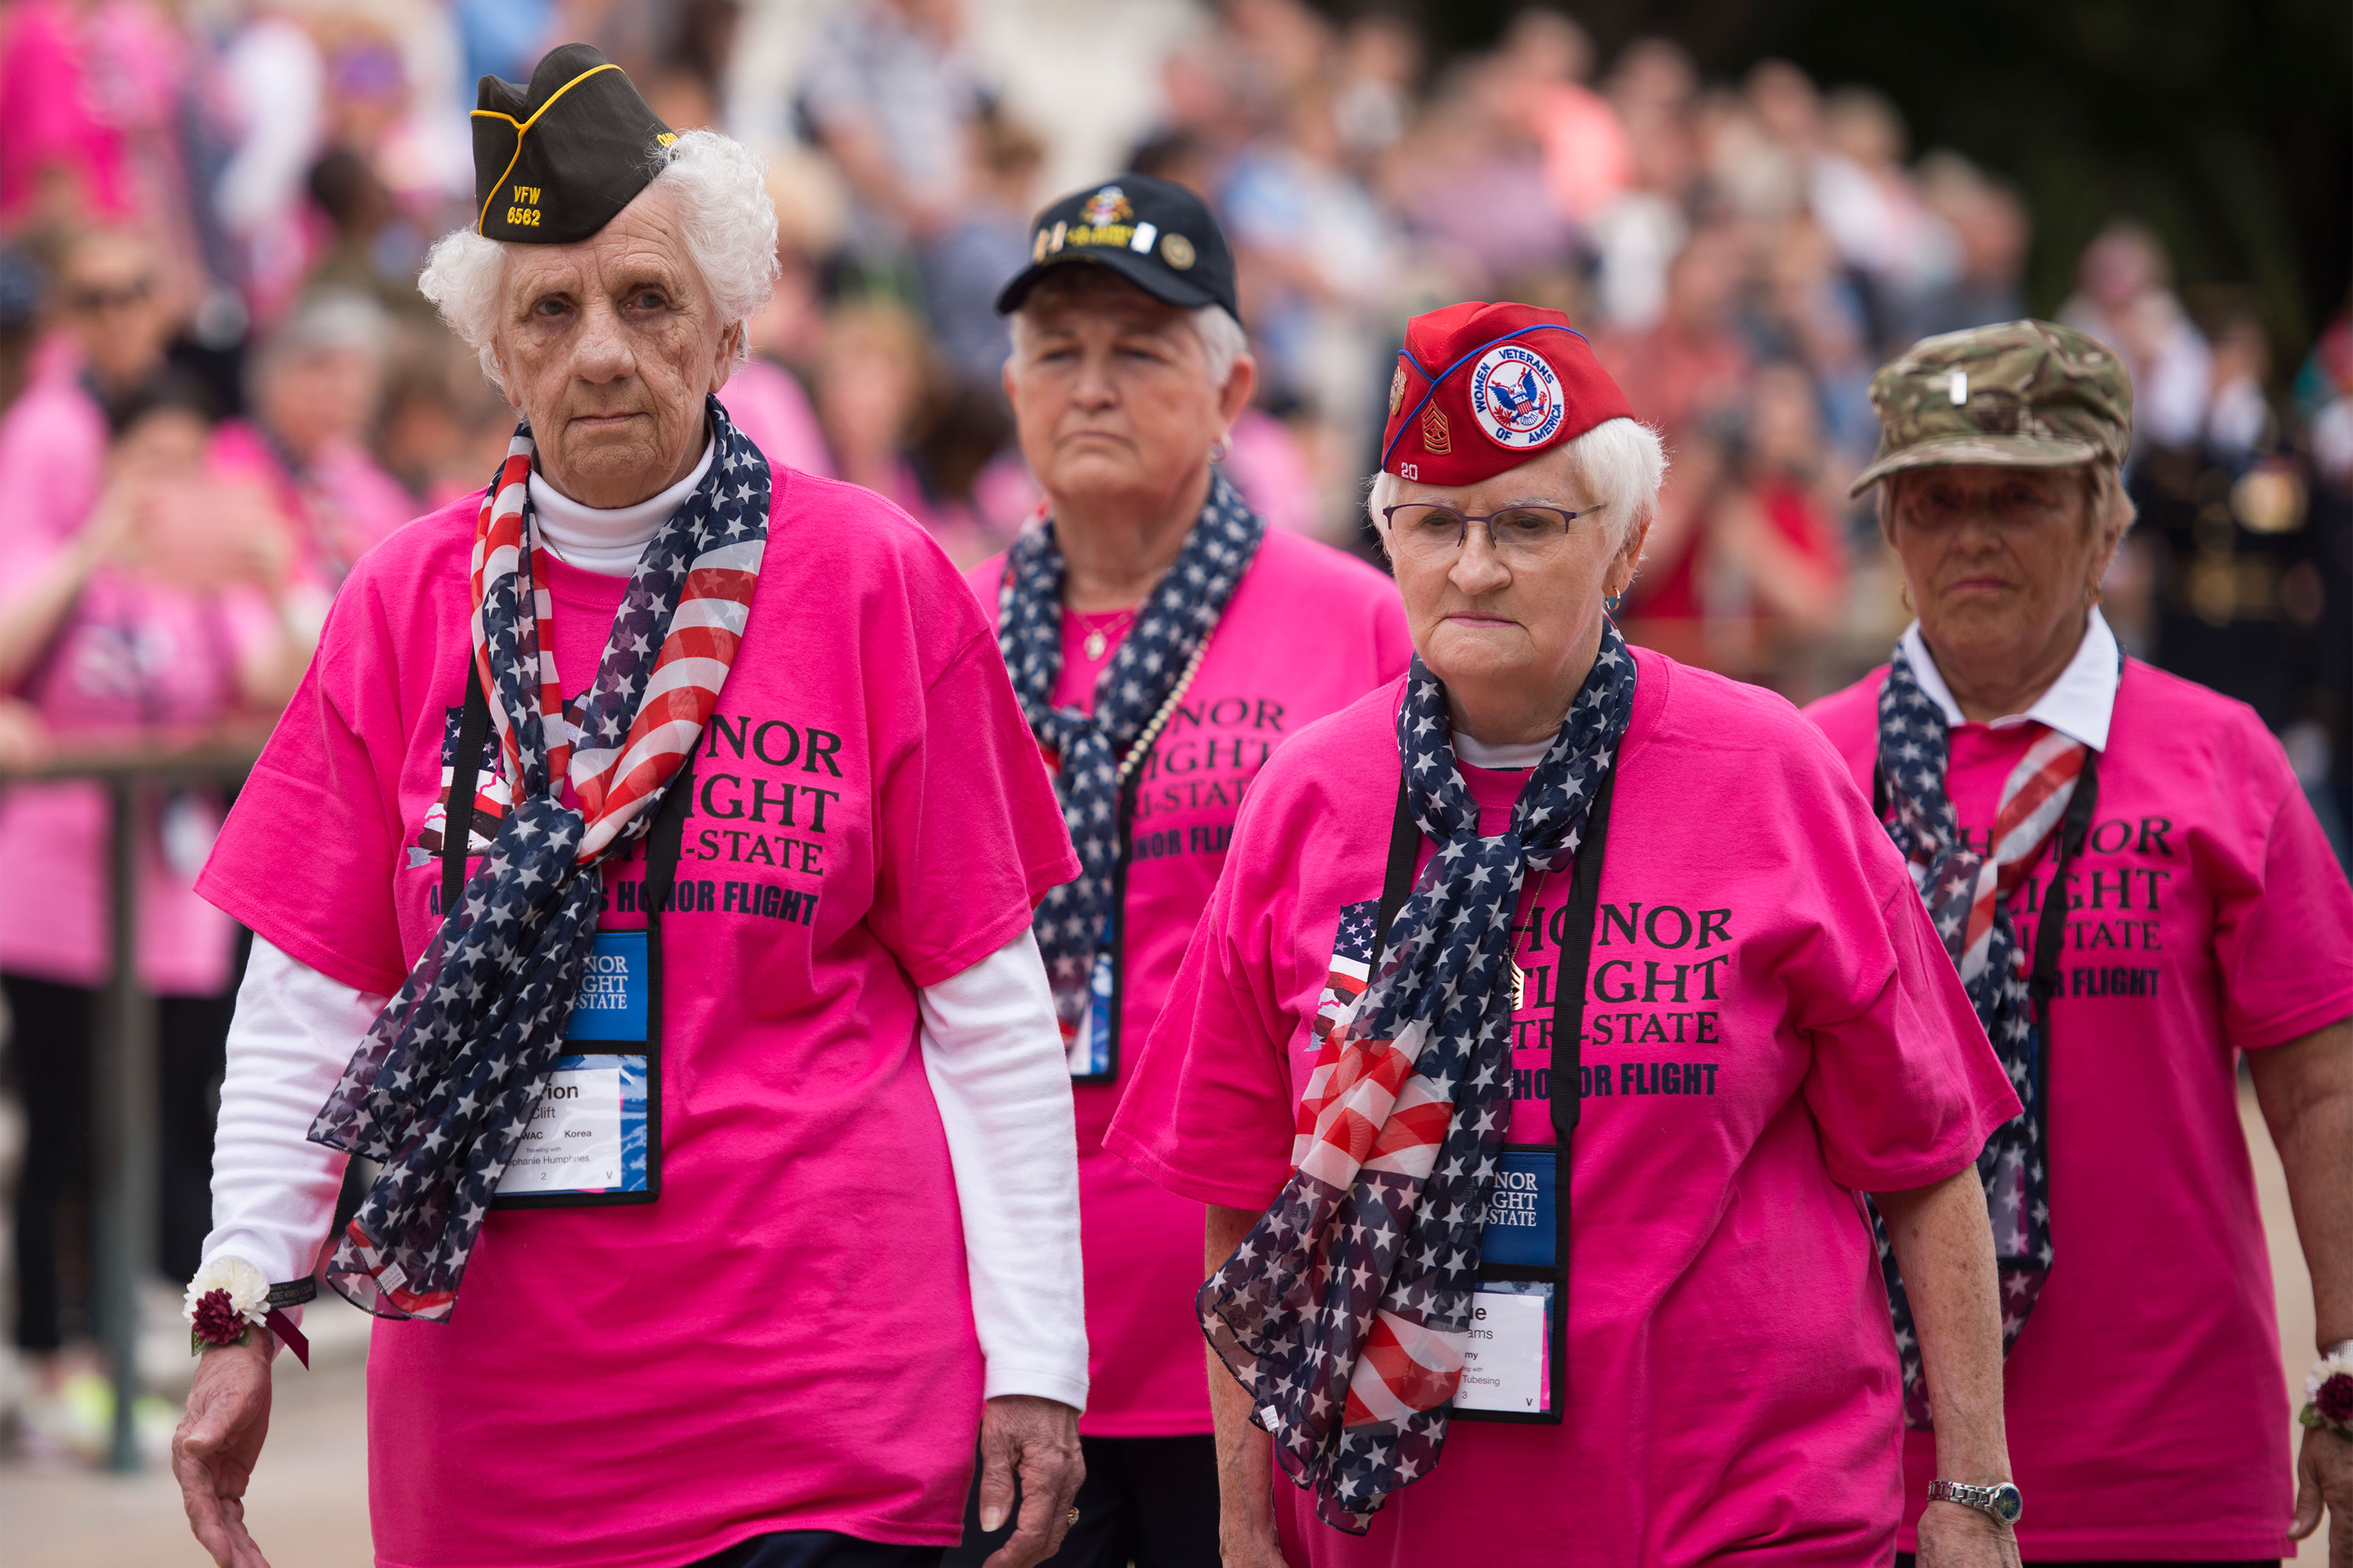 From the left, Women's Army Corps veteran Marion Clift, Army veteran Betty Downs, Army veteran Sue Williams and veteran Army nurse Beverly Reno walk away from the Tomb of the Unknown Soldier after laying a wreath at Arlington National Cemetery, Sept. 22, 2015, in Arlington, Va. They are part of the first all-female honor flight in the United States. 75 female veterans from World War II, Korean War and Vietnam War were in attendance, as well as 75 escorts, who were also female veterans or active-duty militar